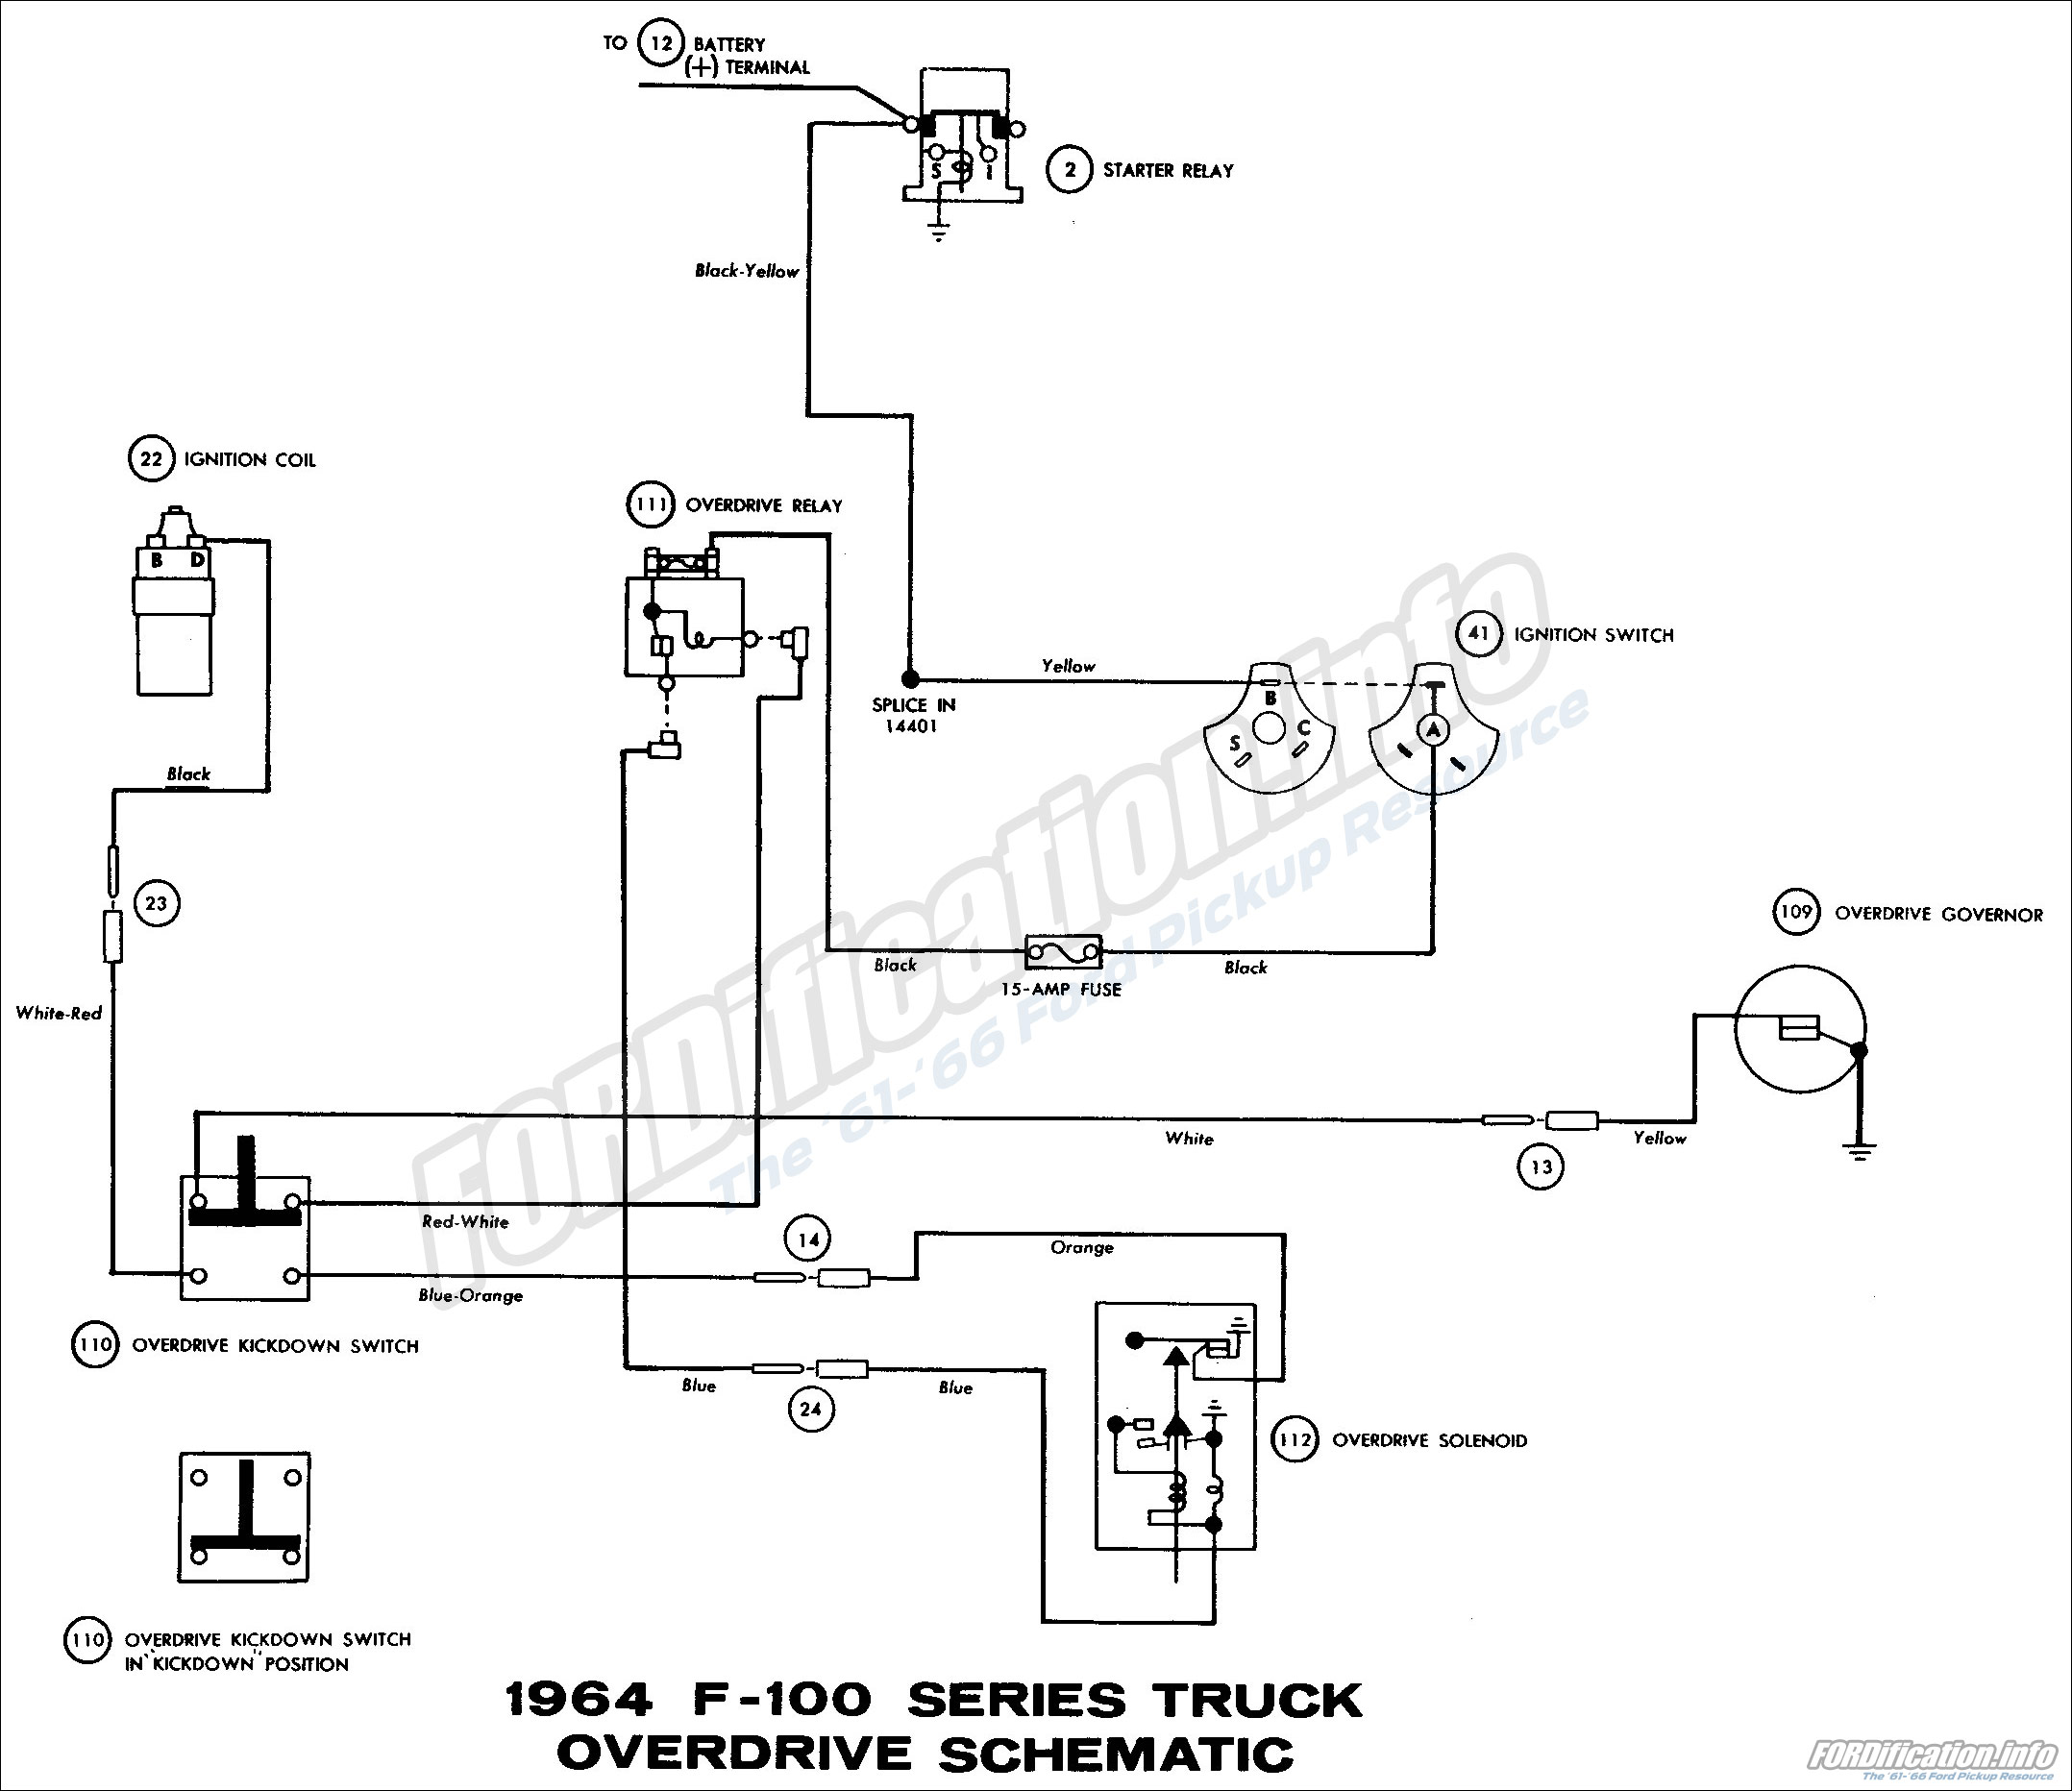 1964 Ford F100 Wiring Harness - Wiring Diagram Mega Ignition Switch Schematic on starter switch schematic, fuel gauge schematic, high voltage switch schematic, oil switch schematic, electrical switch schematic, alternator schematic, speed switch schematic, fuel injector schematic, pressure transmitter symbol schematic, transmission schematic, 3 position switch schematic, master cylinder schematic, relay schematic, ignition timing, ignition diagram, fan blade schematic, generator schematic, 3 wire thermocouple wiring schematic, engine schematic, vacuum pump schematic,